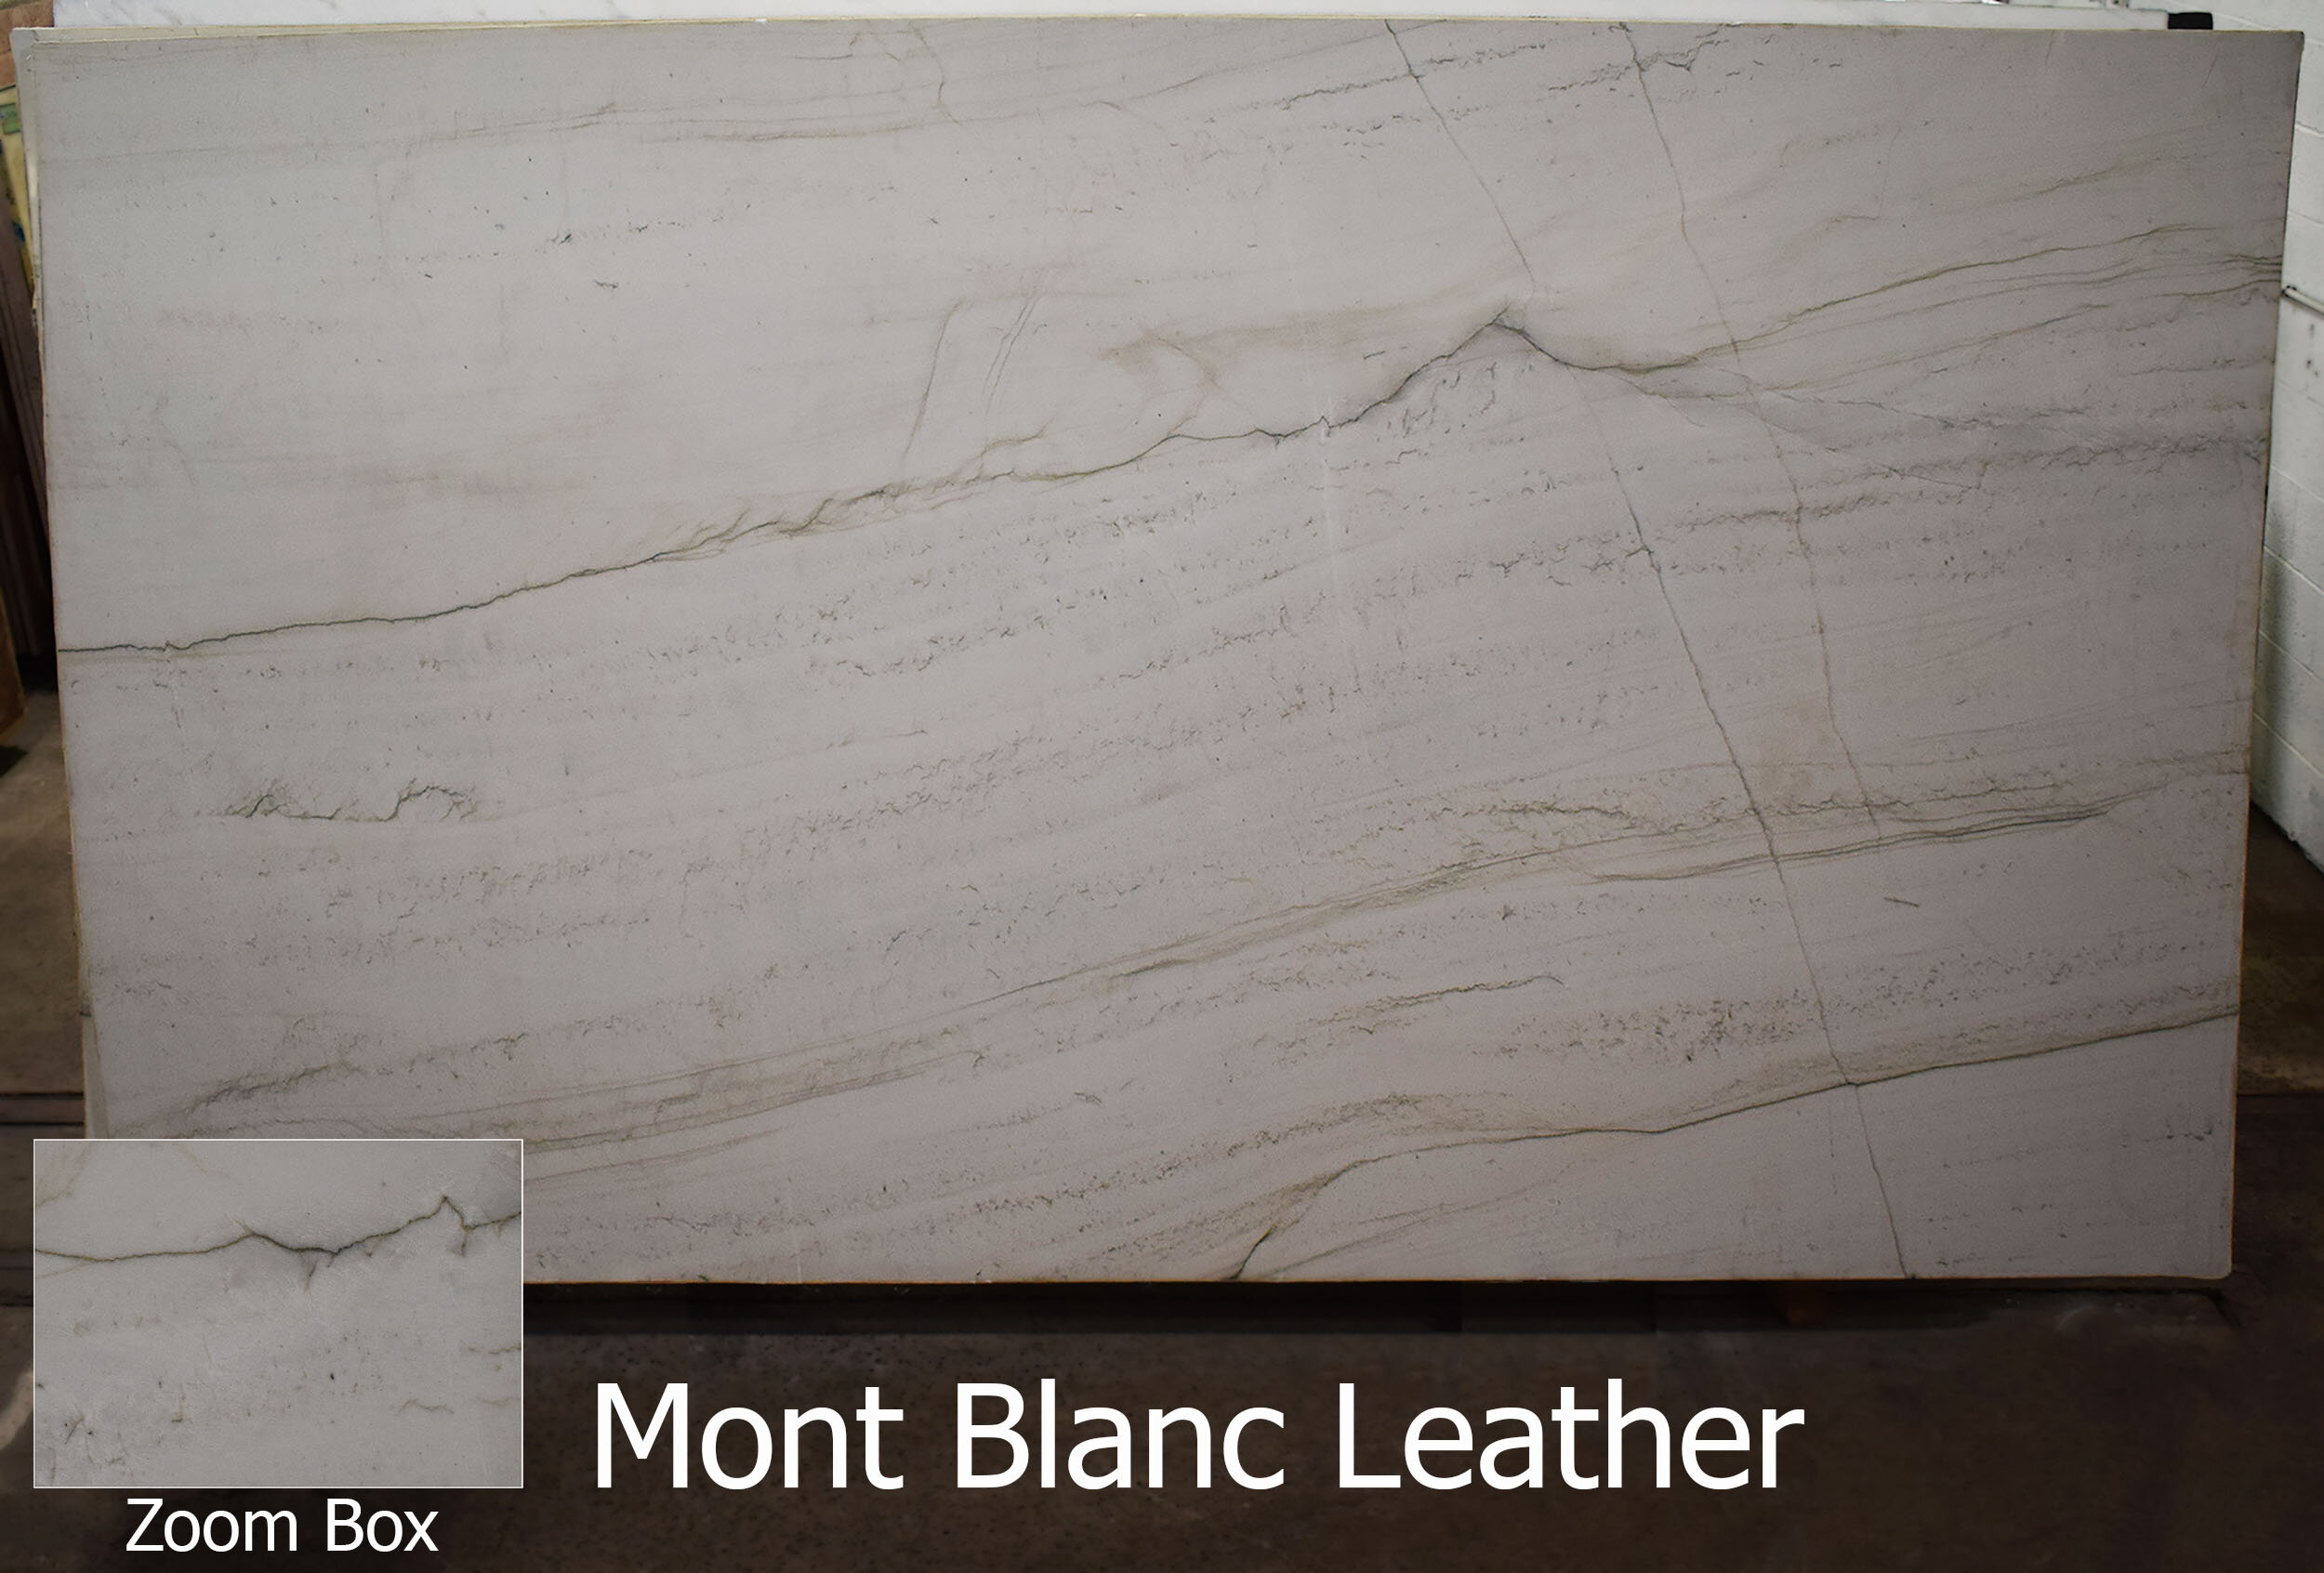 MONT BLANC LEATHER